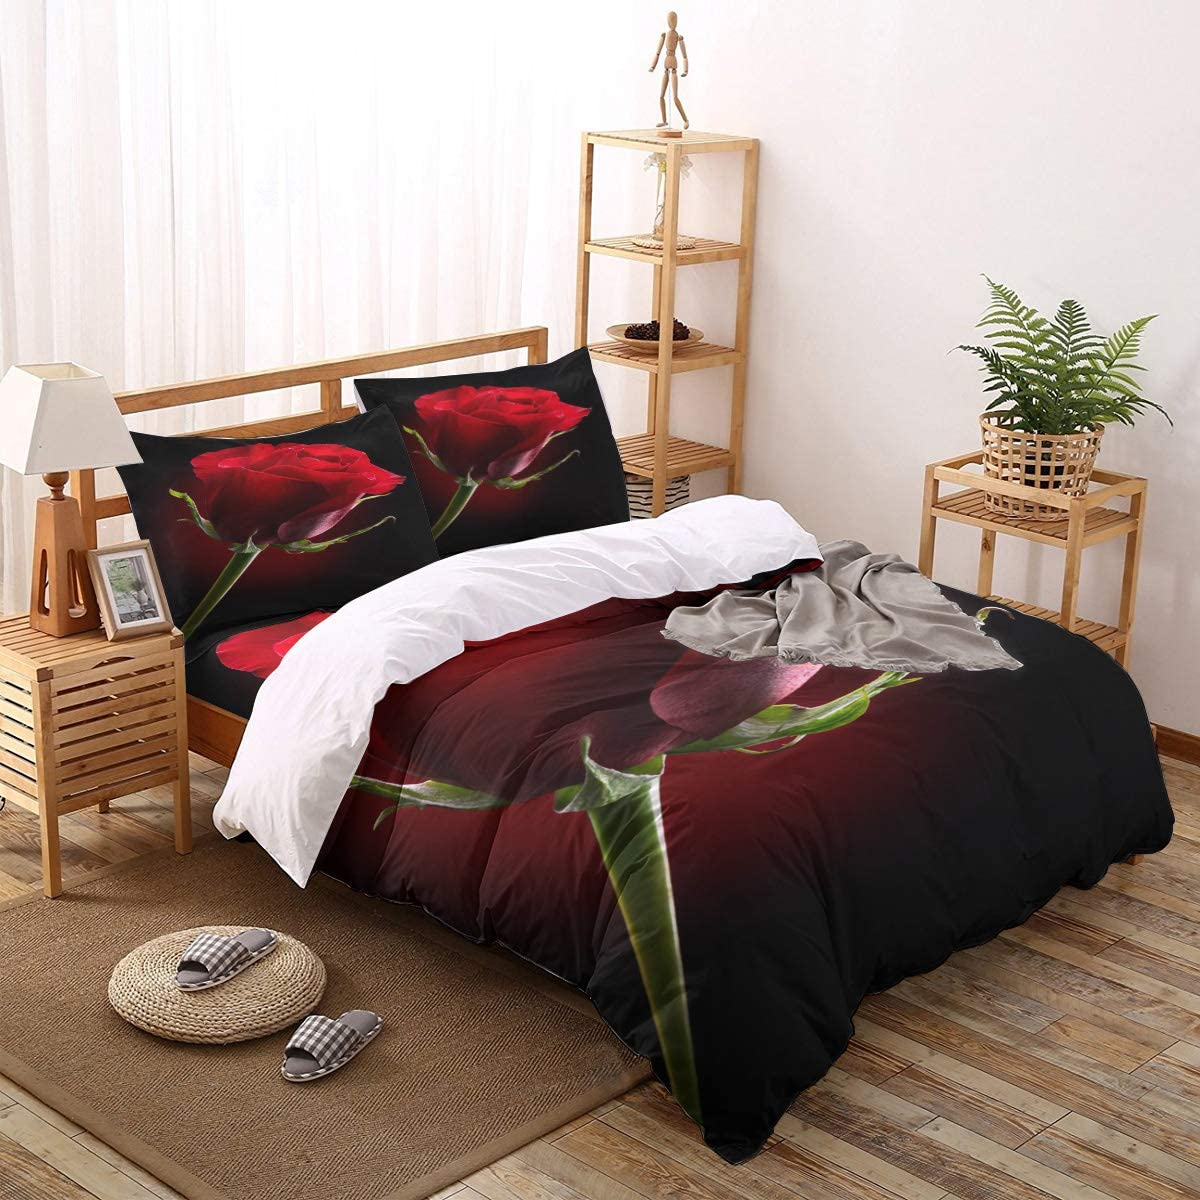 Olivefox 4 PCS Bedding Set Comforter Max 44% OFF Cover Romantic Red New mail order Rose